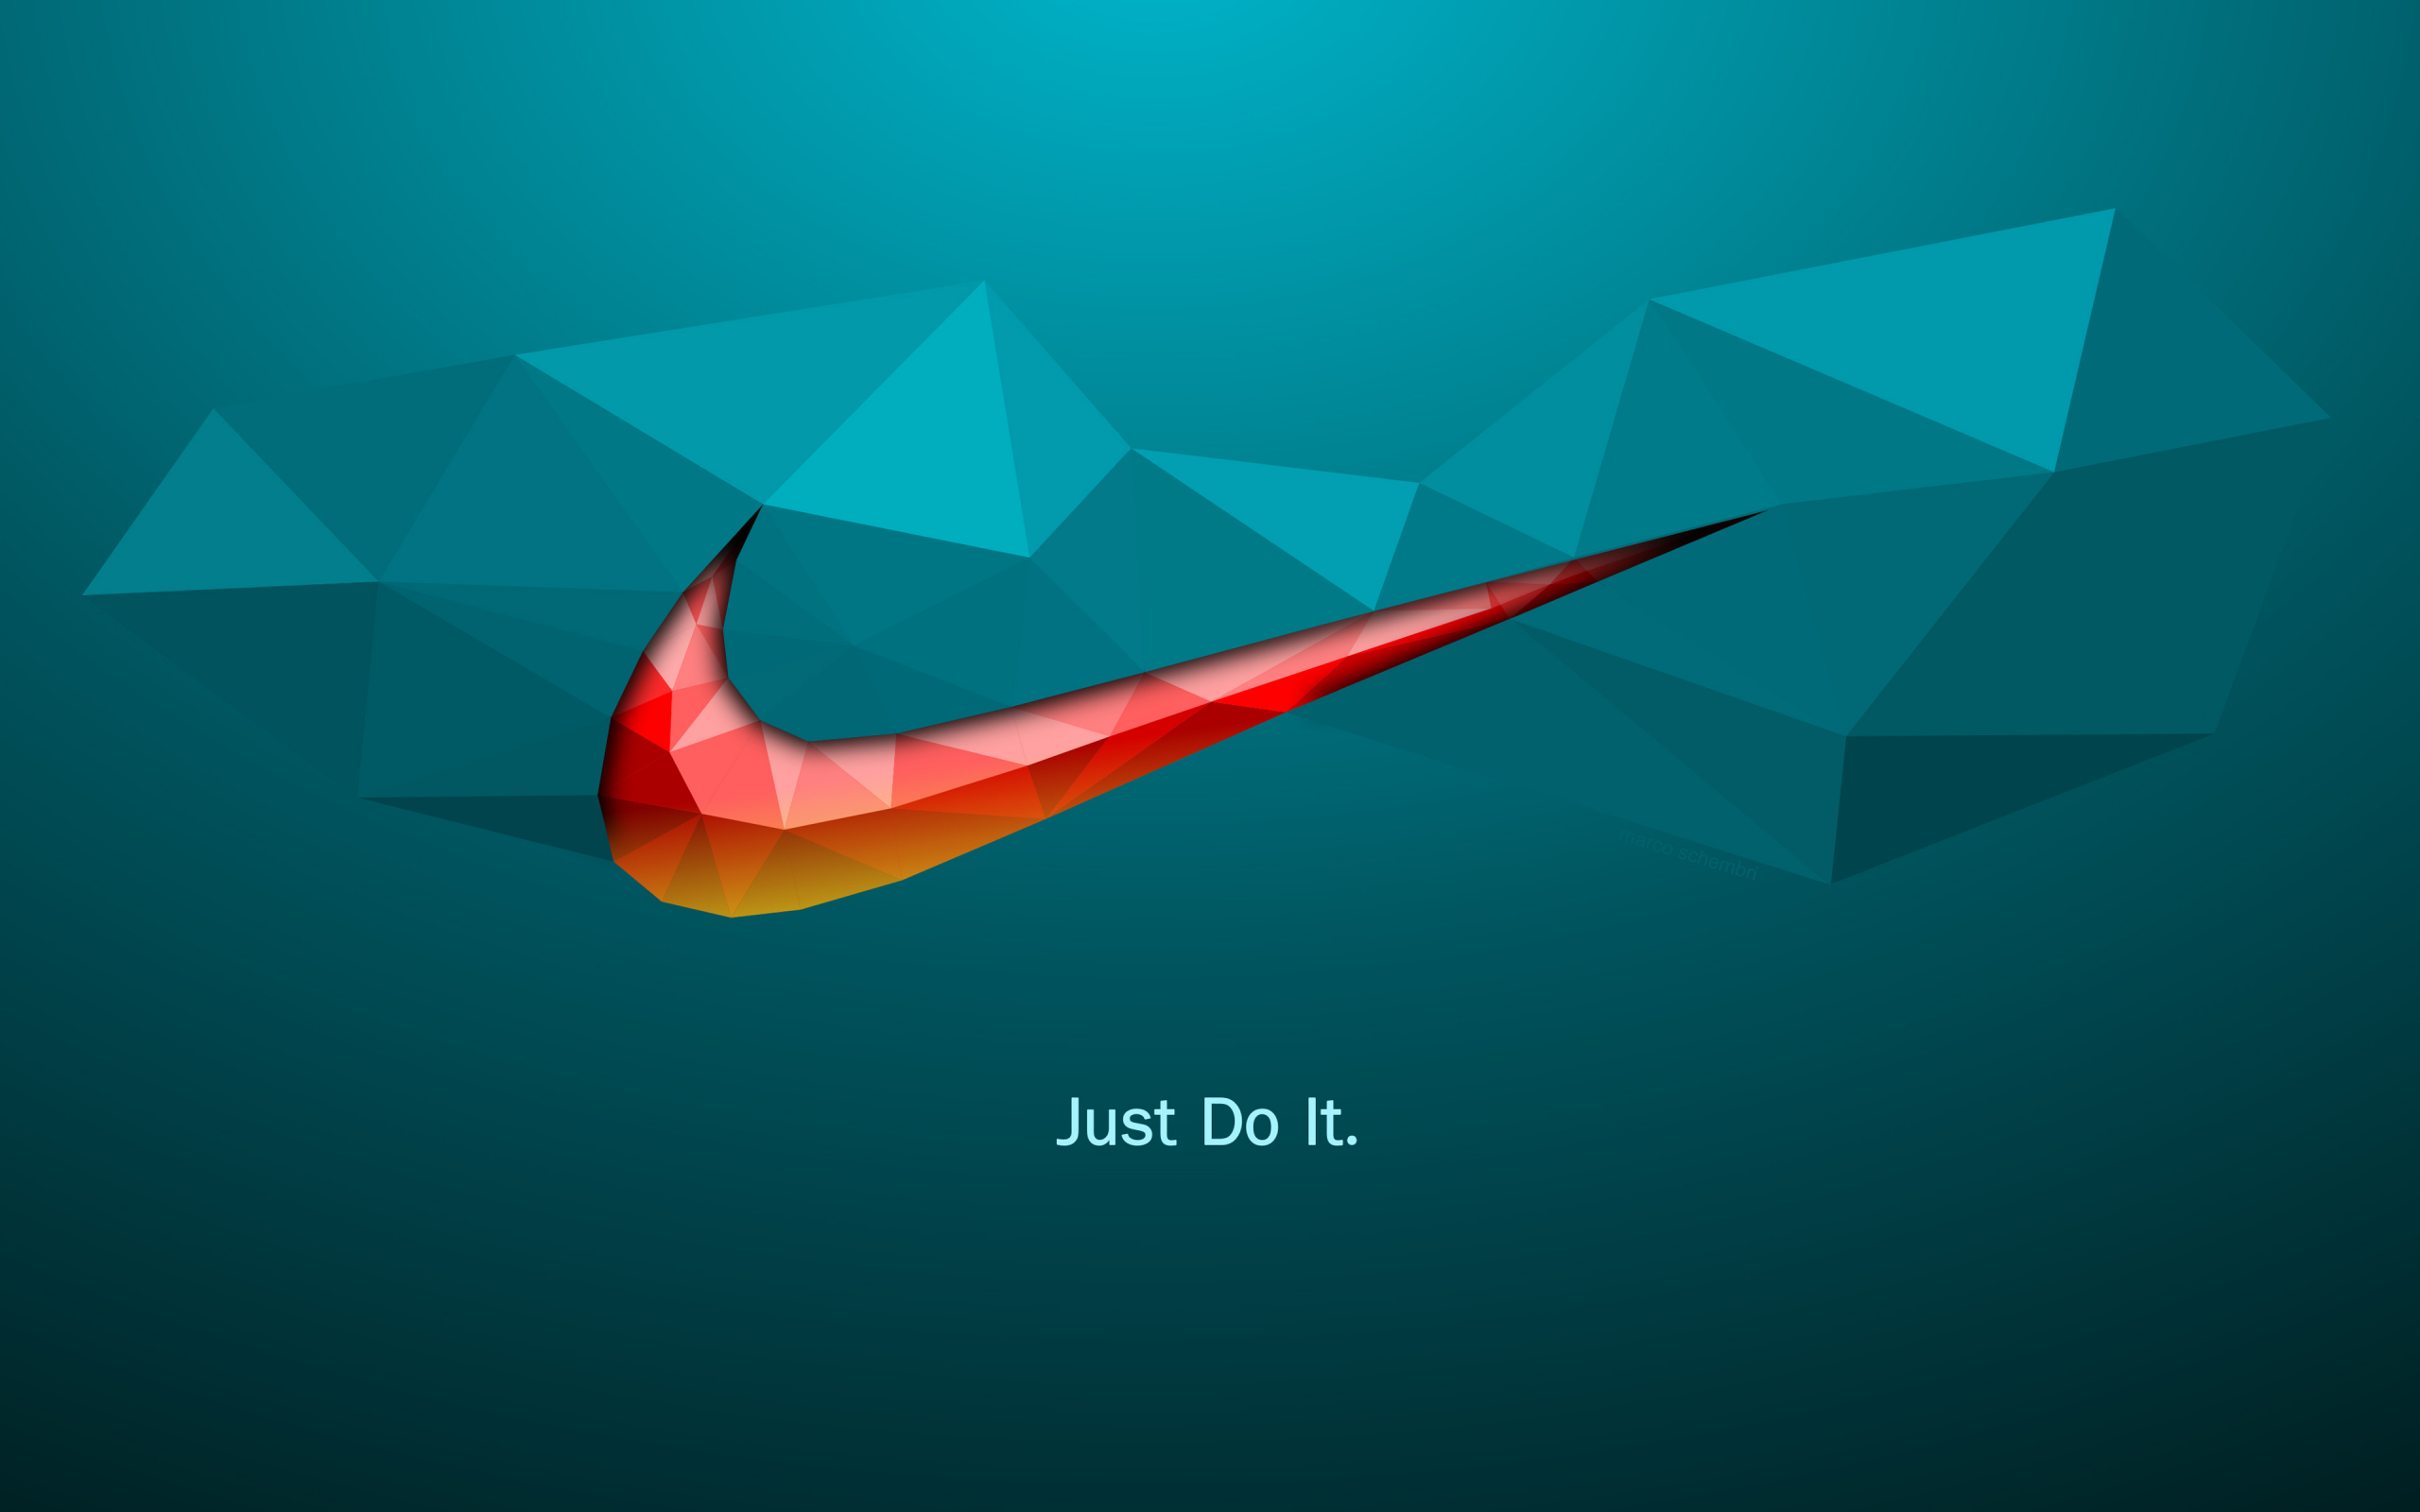 2560x1600 wallpaper Just do it, quotes, Nike, logo, abstract